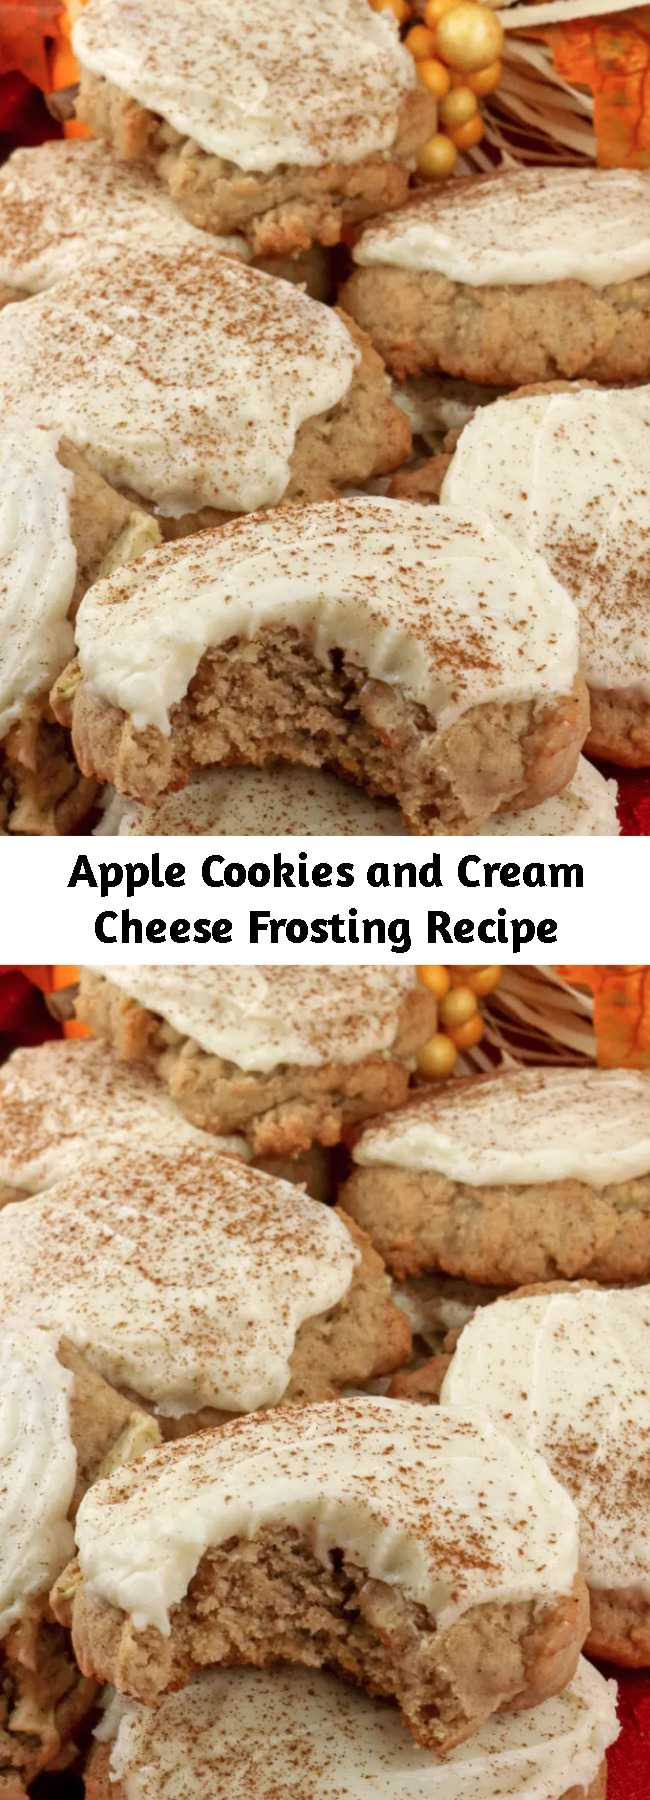 Apple Cookies and Cream Cheese Frosting Recipe - Apples and cinnamon combine in light, fluffy and delicious Apple Cookies with Cream Cheese Frosting that is a true family favorite.